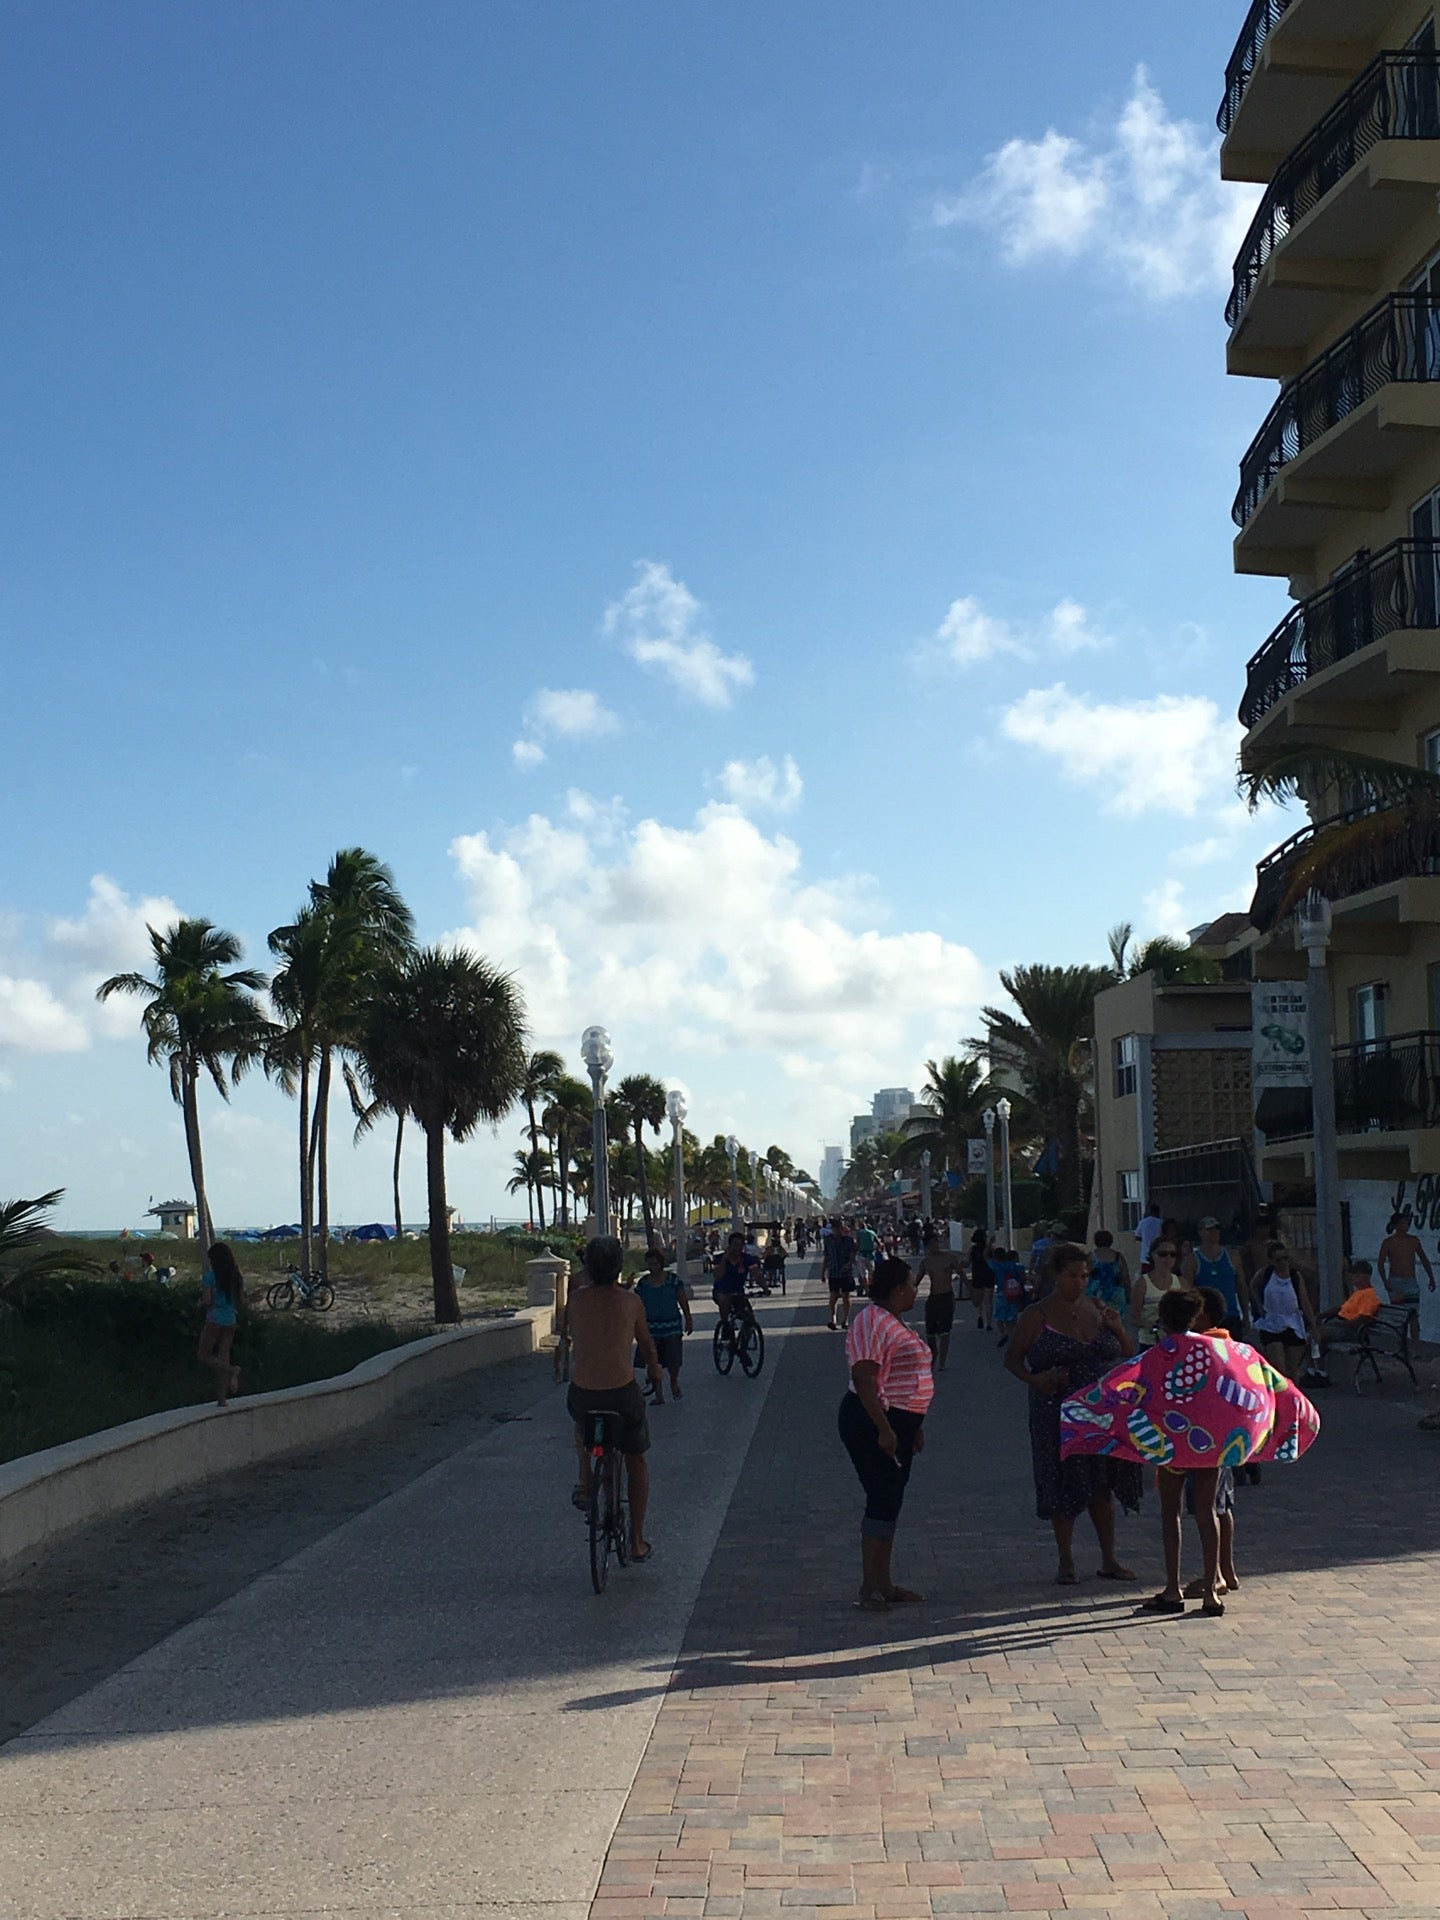 Broadwalk at Hollywood Beach